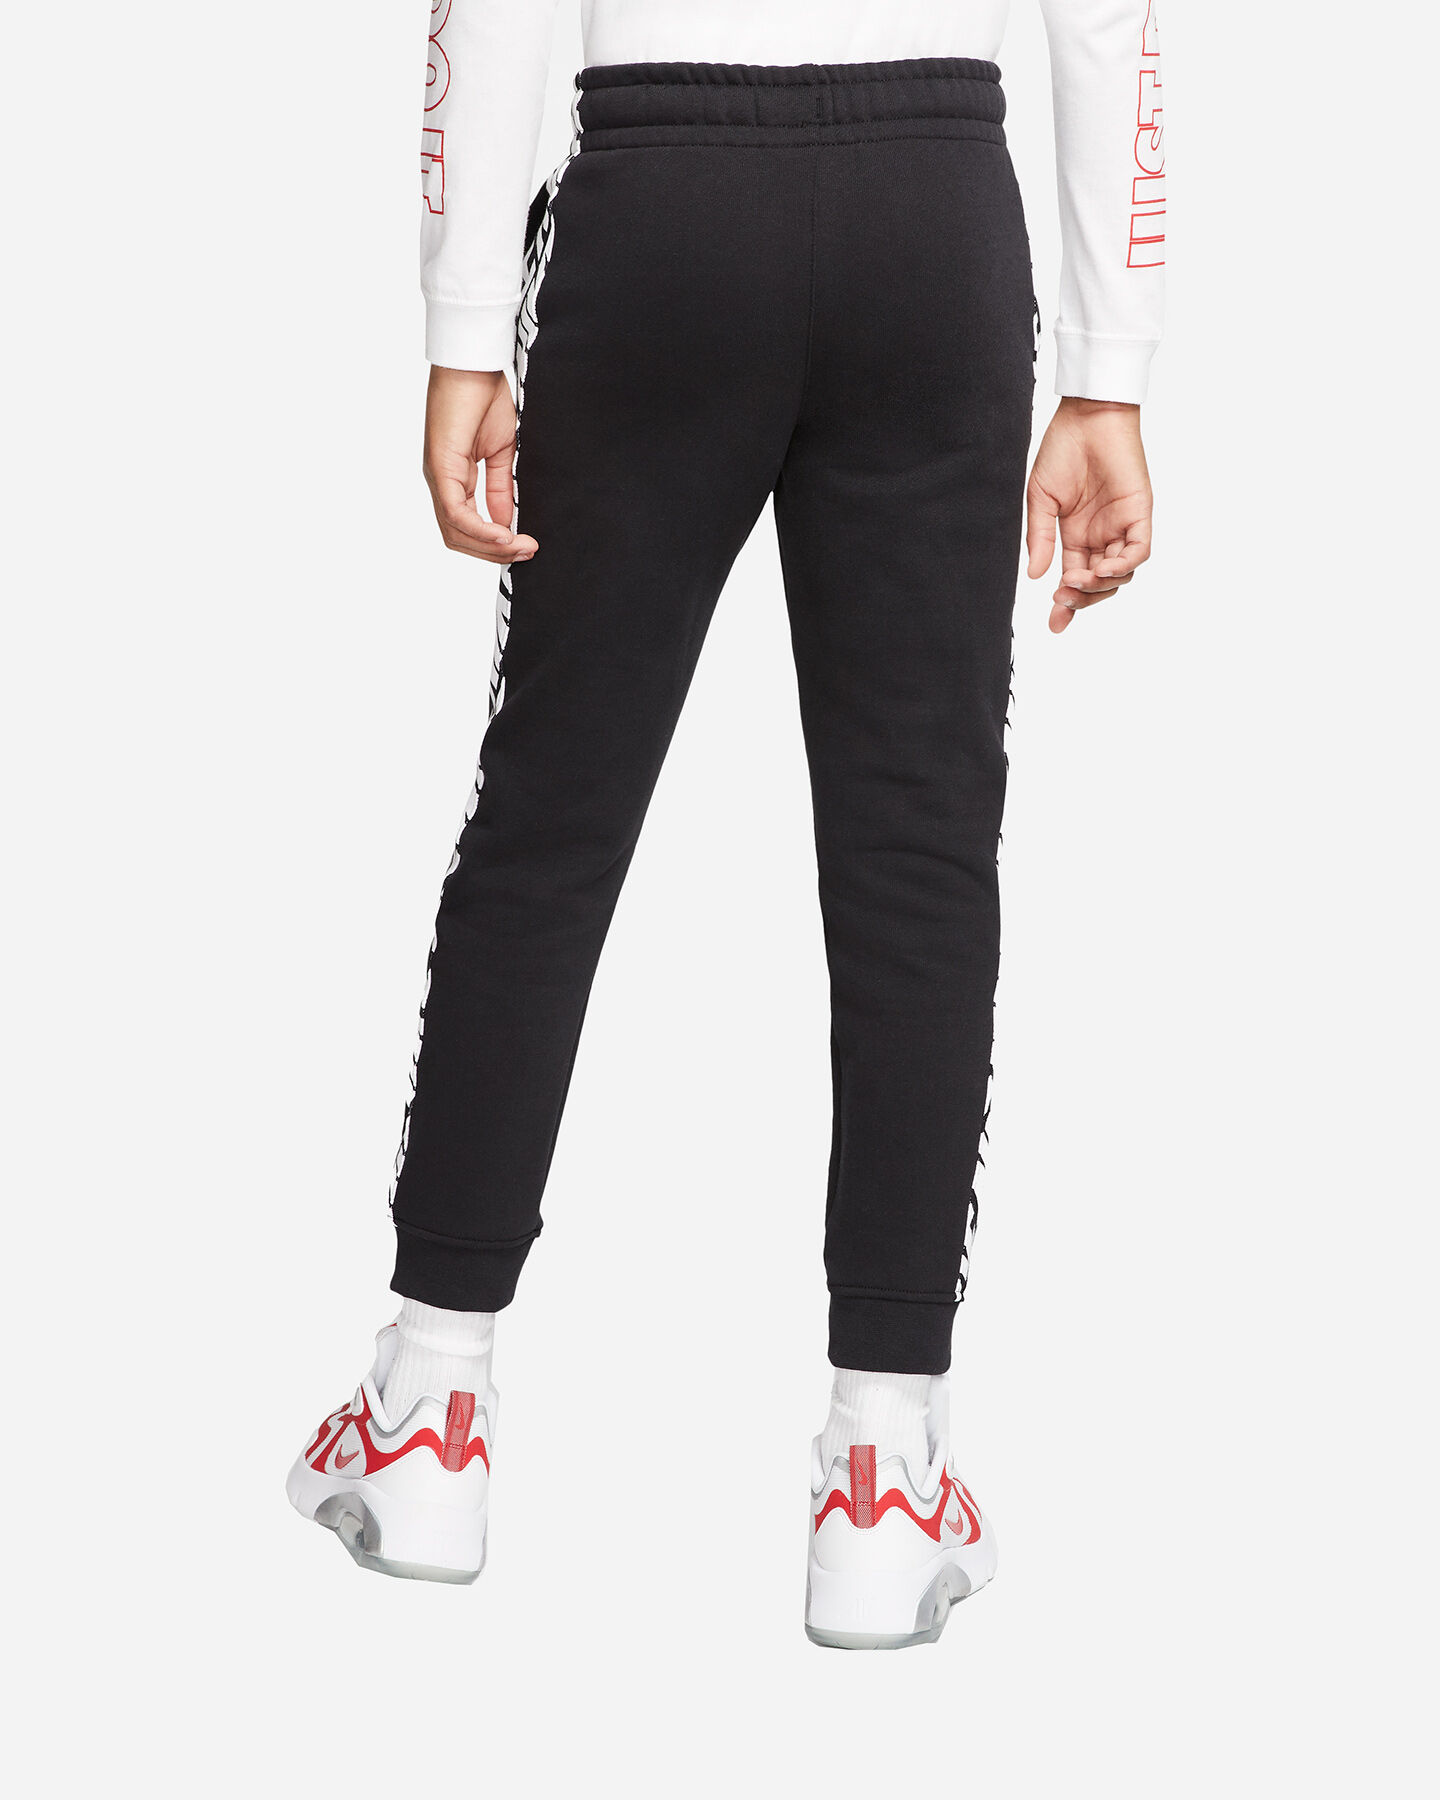 Pantalone NIKE FNG TAPE JR S5164649 scatto 1